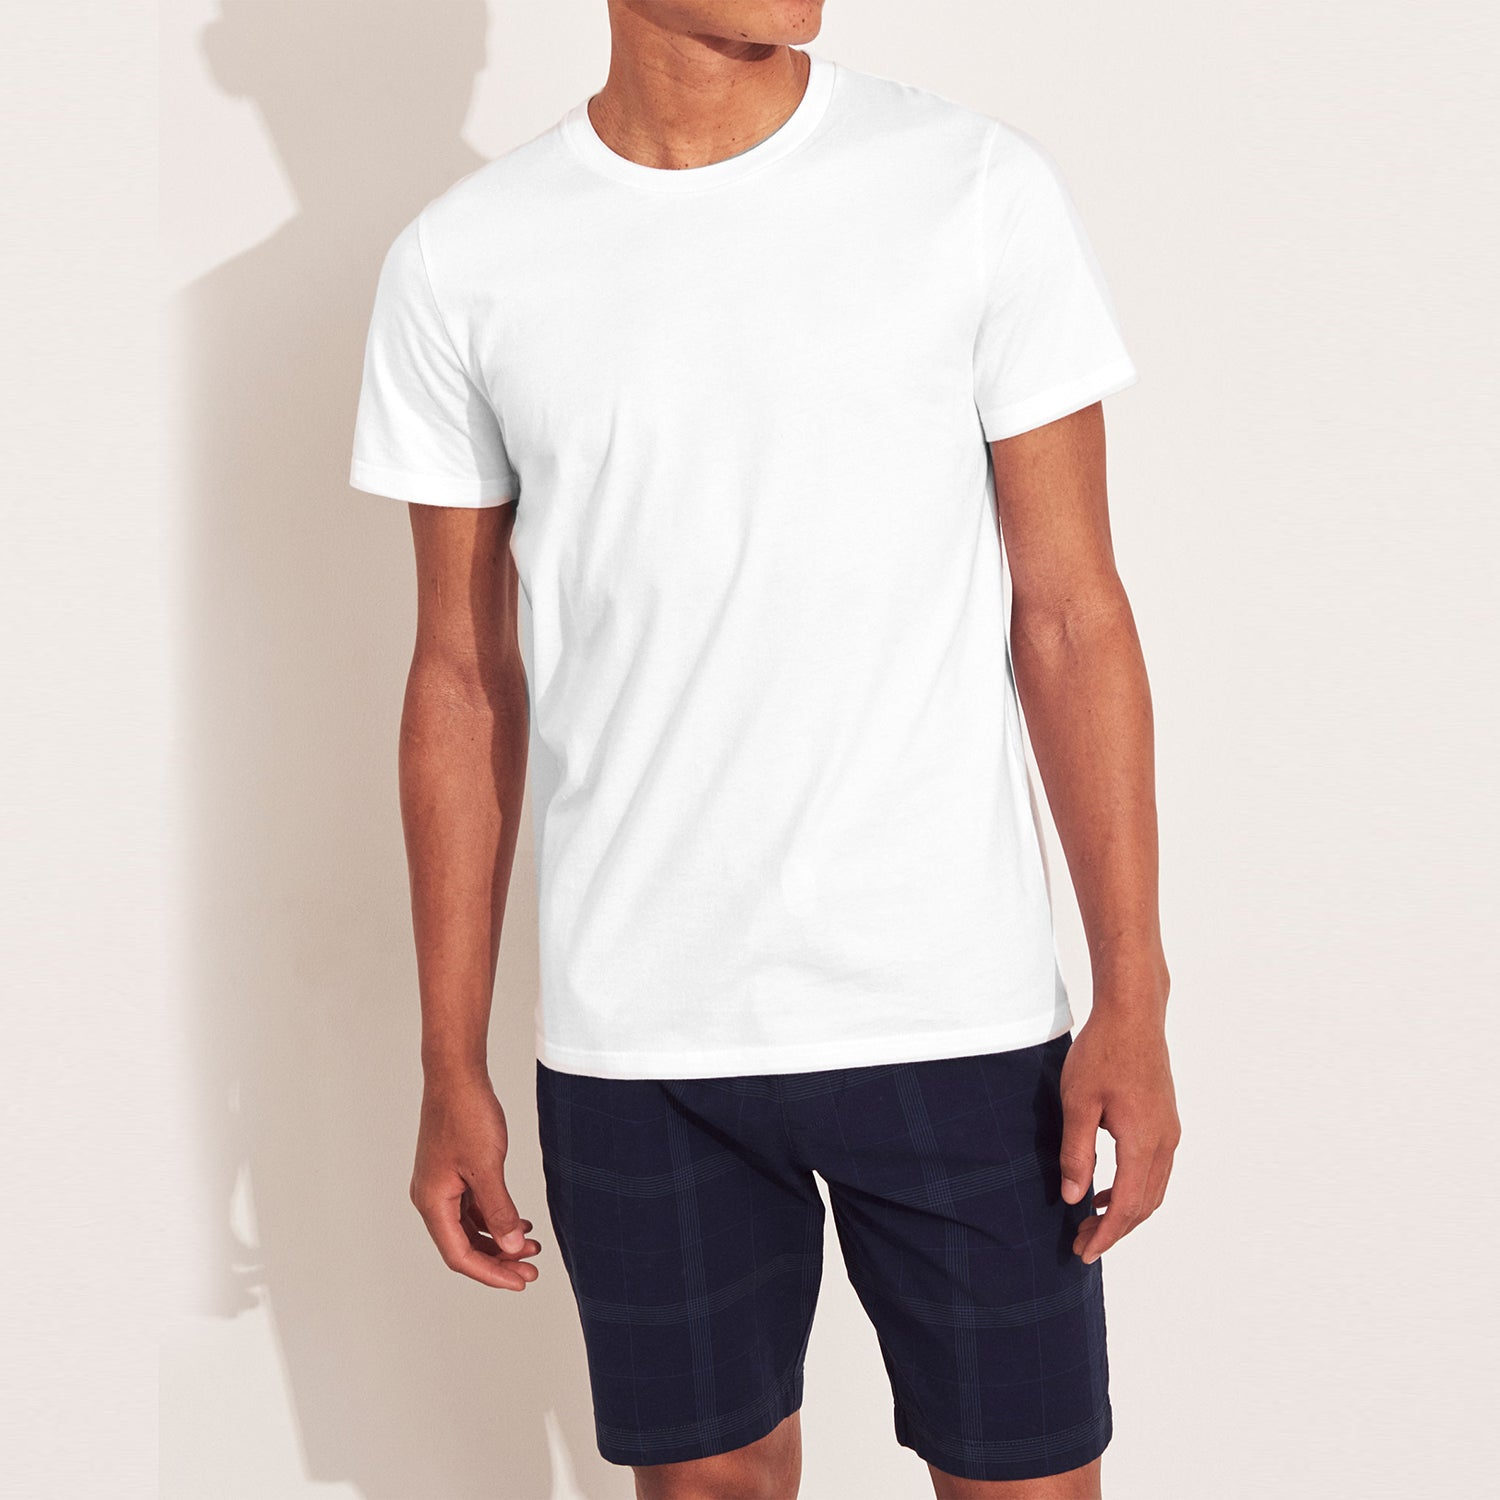 Popular Sport Single Jersey Tee Shirt For Men-White-BE9687